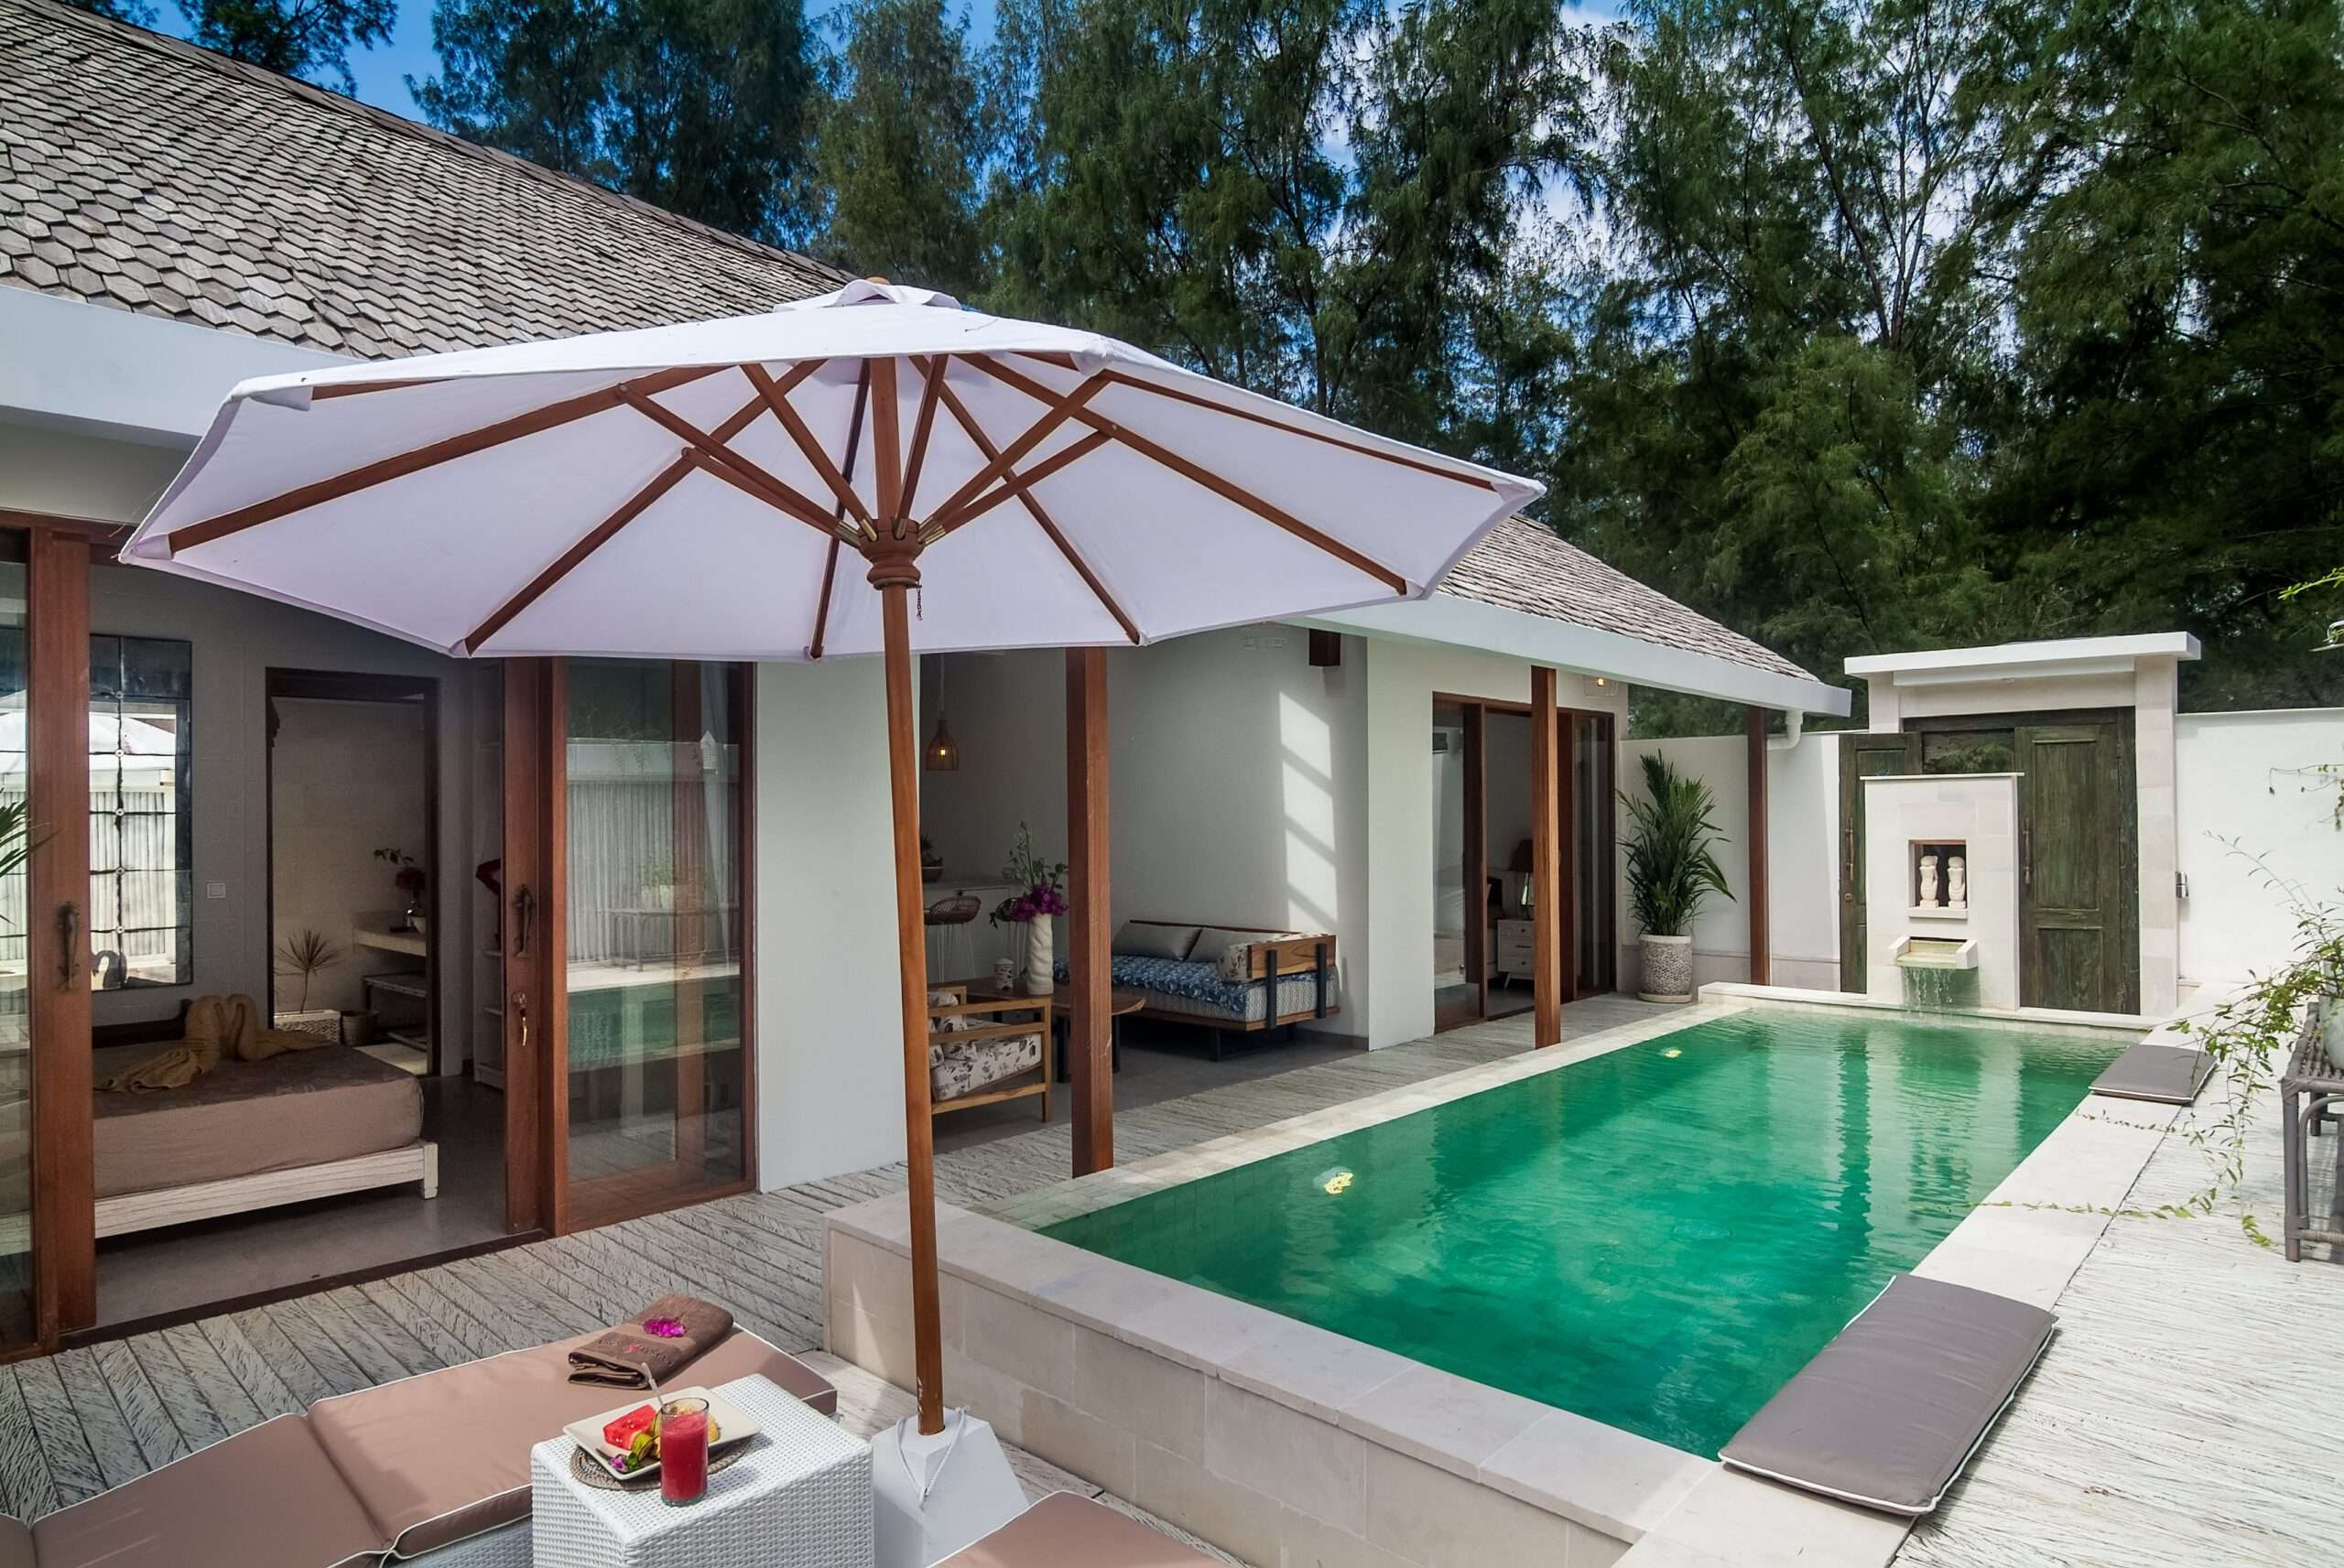 bedrooms open out to the pool at Villa Coral Flora in Gili Trawangan